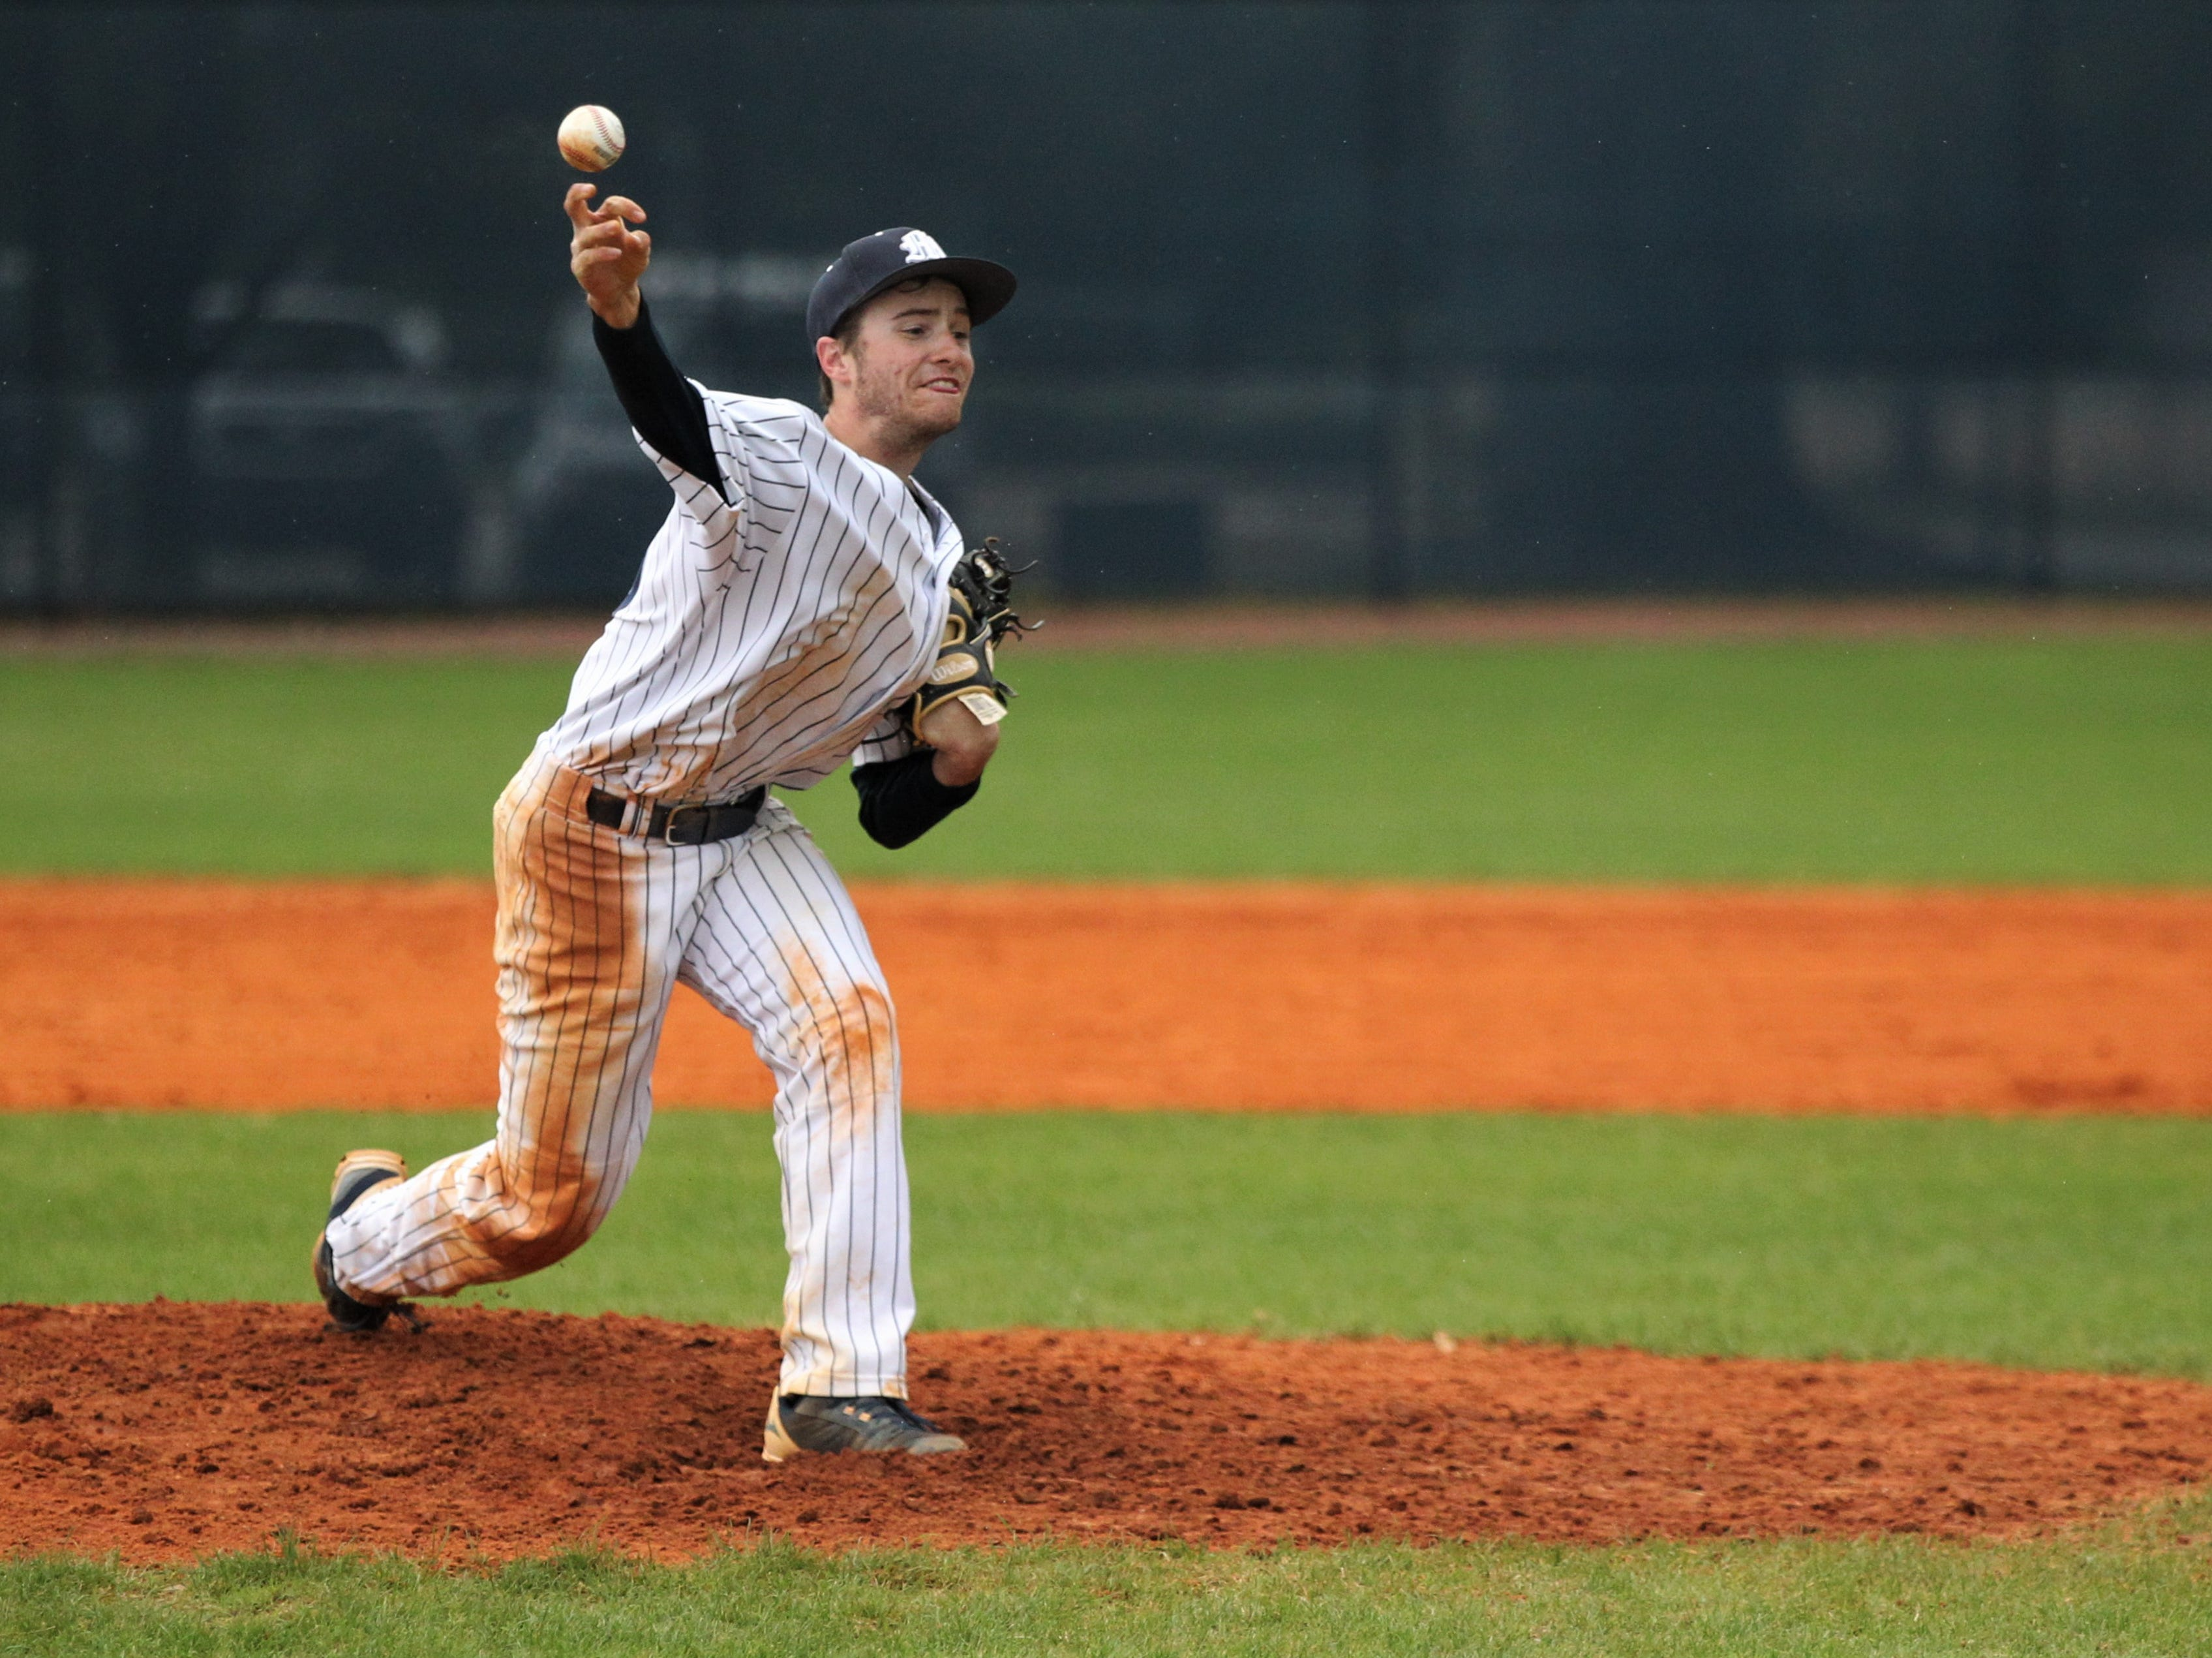 Maclay's Grant Harrison pitches as Liberty County's baseball team went on the road to beat Maclay 8-2 on Saturday, March 16, 2019. The Bulldogs played their first game following their head coach Corey Crum's tragic death six days ago.